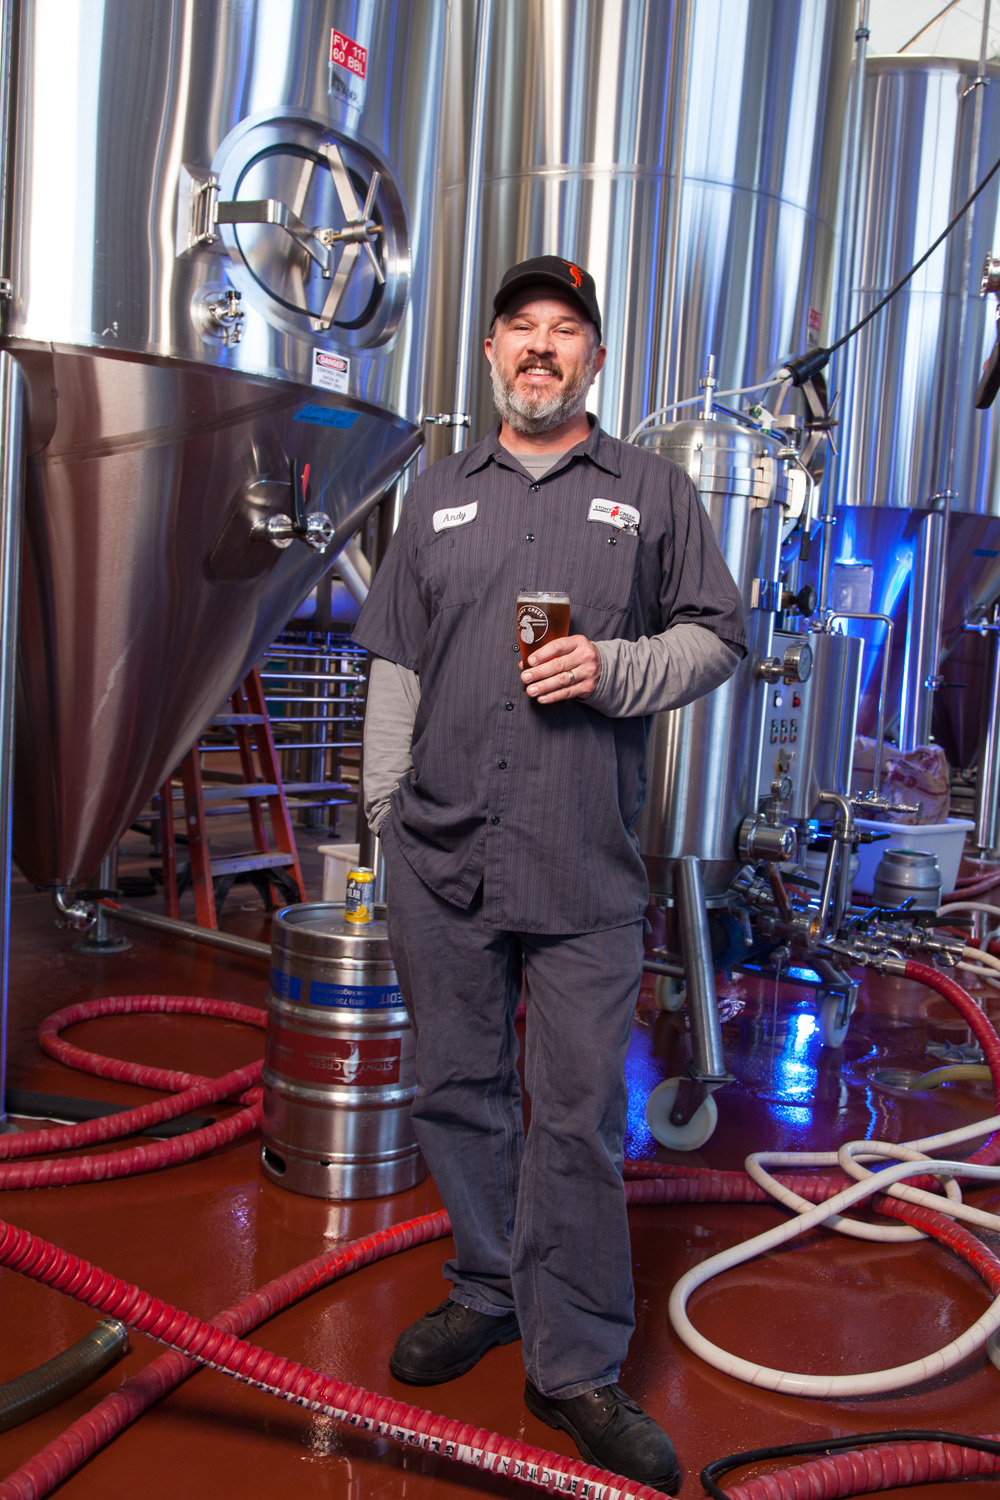 Andy Schwartz, Brewmaster at Stonycreek Brewing Co. Branford, CT Established in 2015